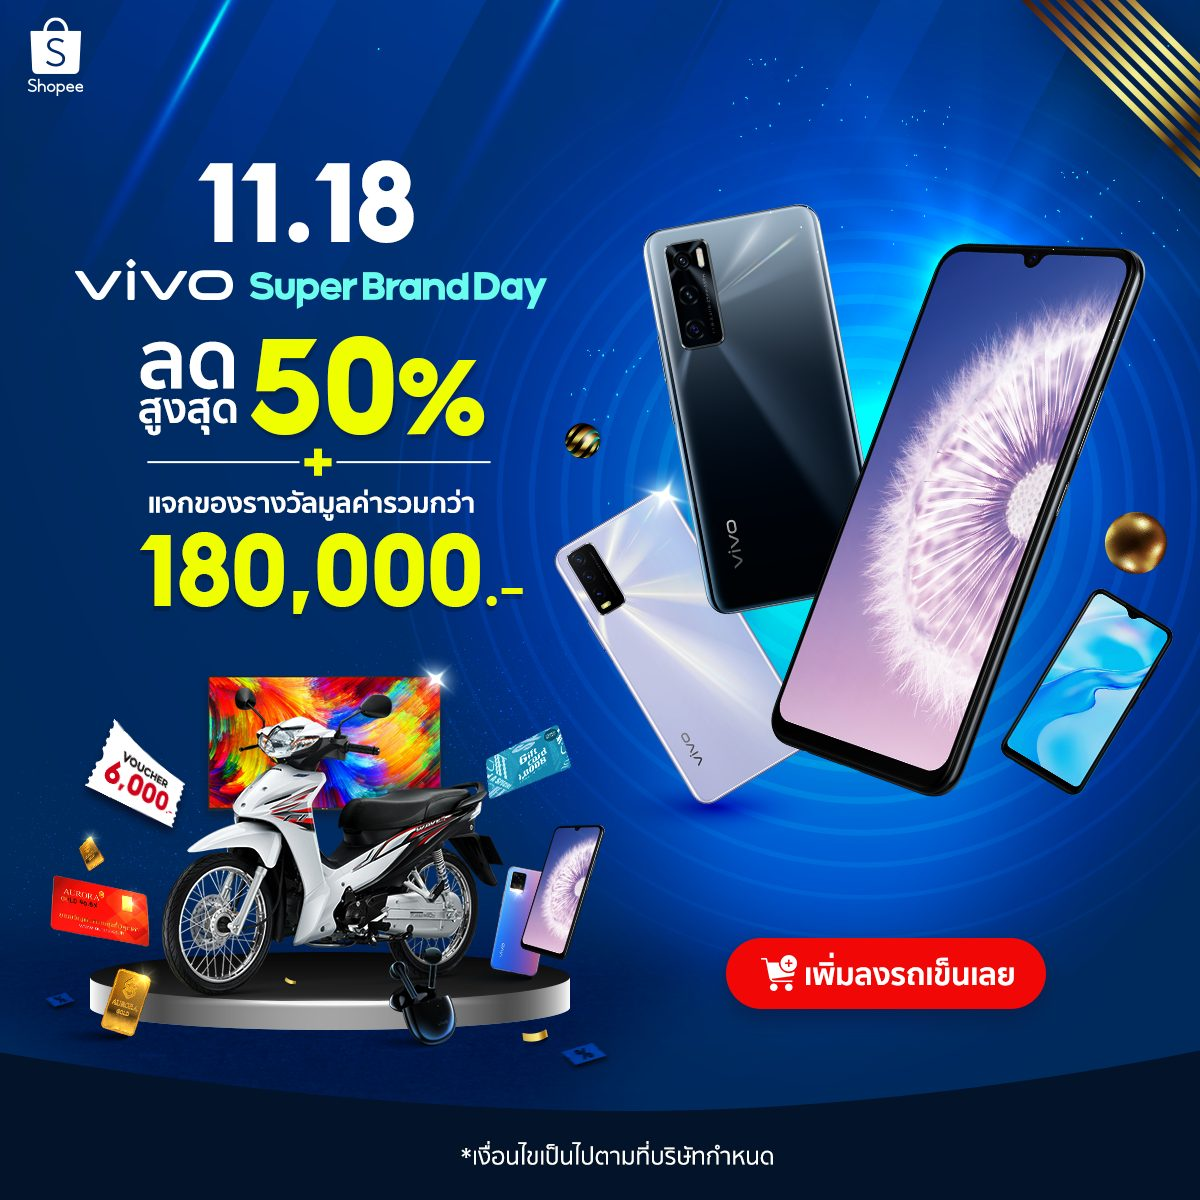 Shopee smartphones Vivo Super Brand Day มือถือ วีโว่